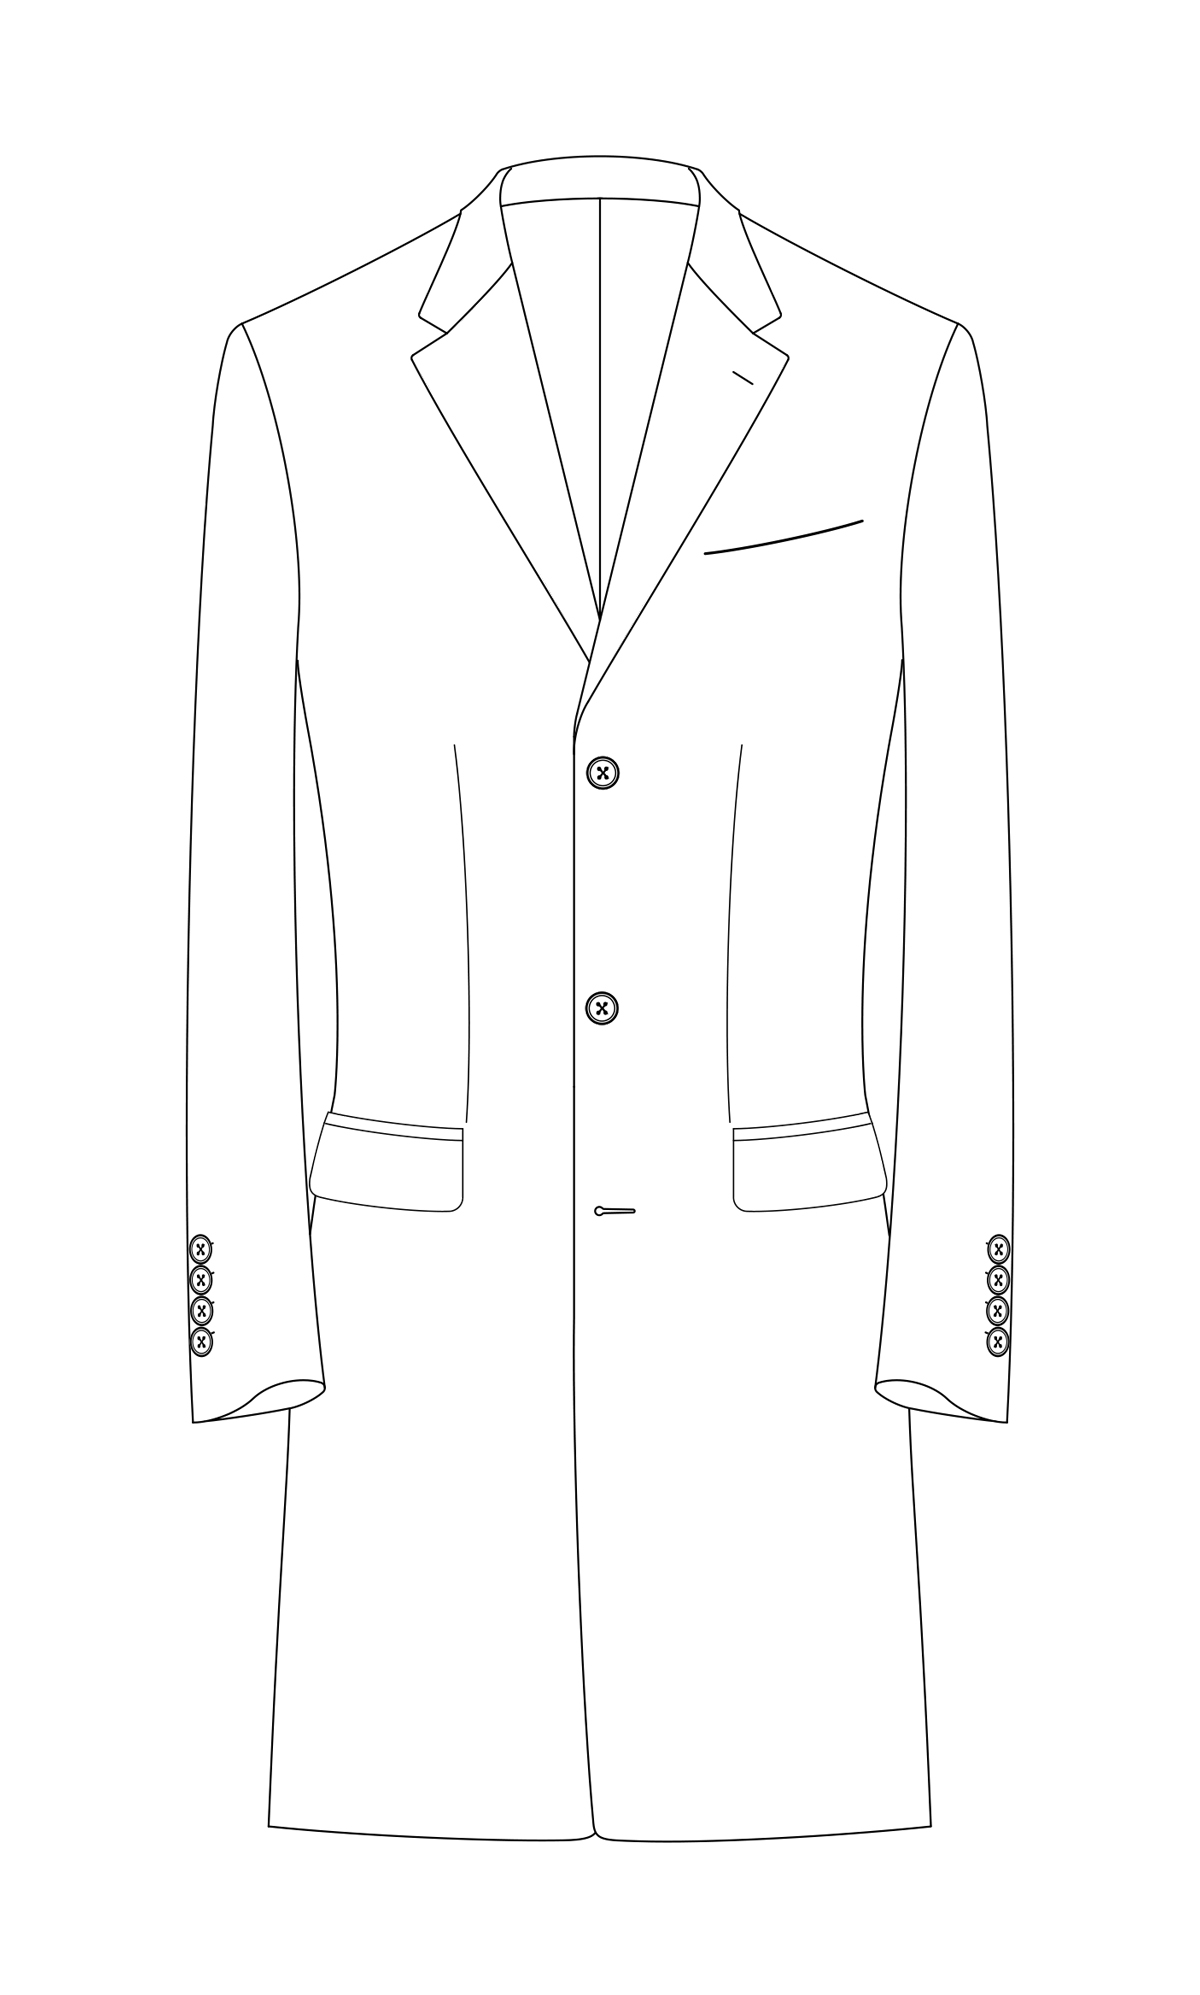 Outerwear_coat02_2017.jpg